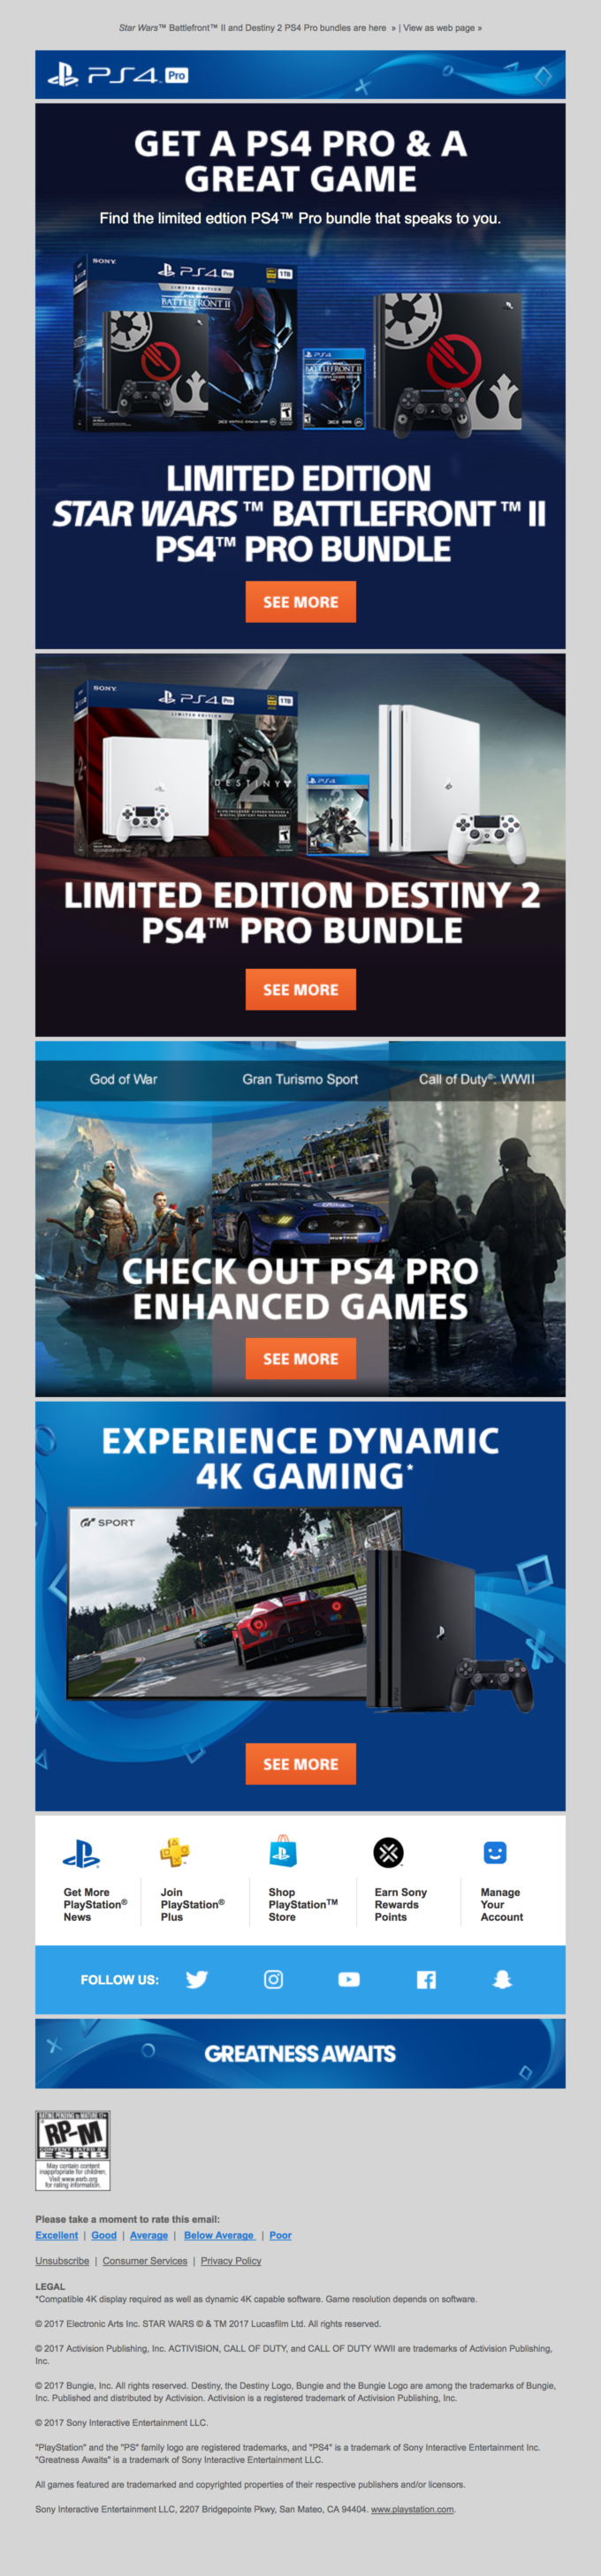 Get a deal on PS4 Pro